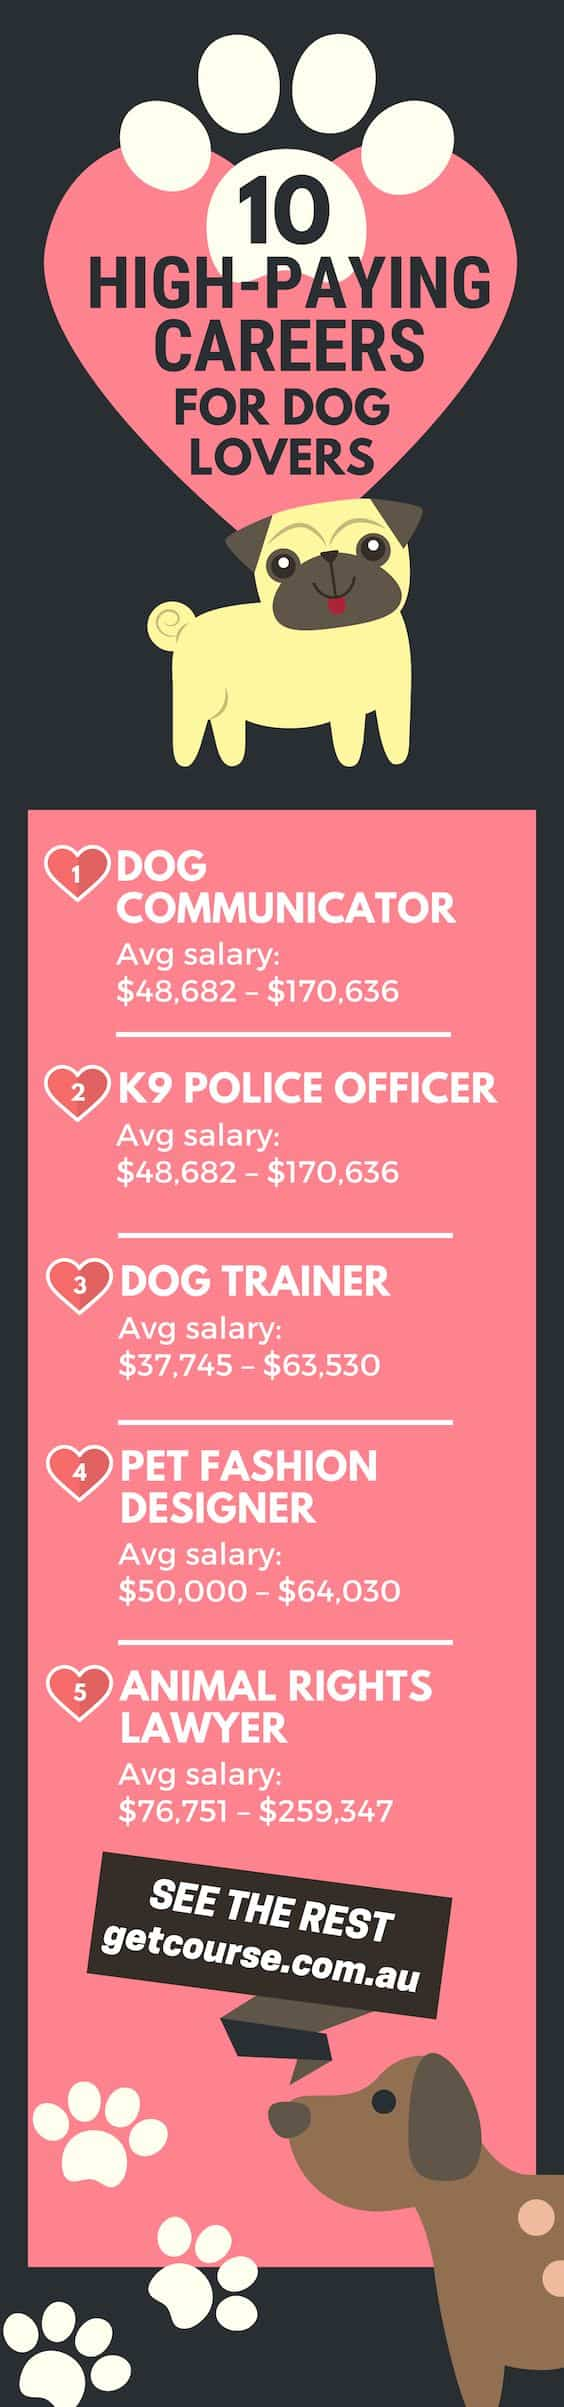 Dog Training Courses Will Lead You to These High-Paying Jobs